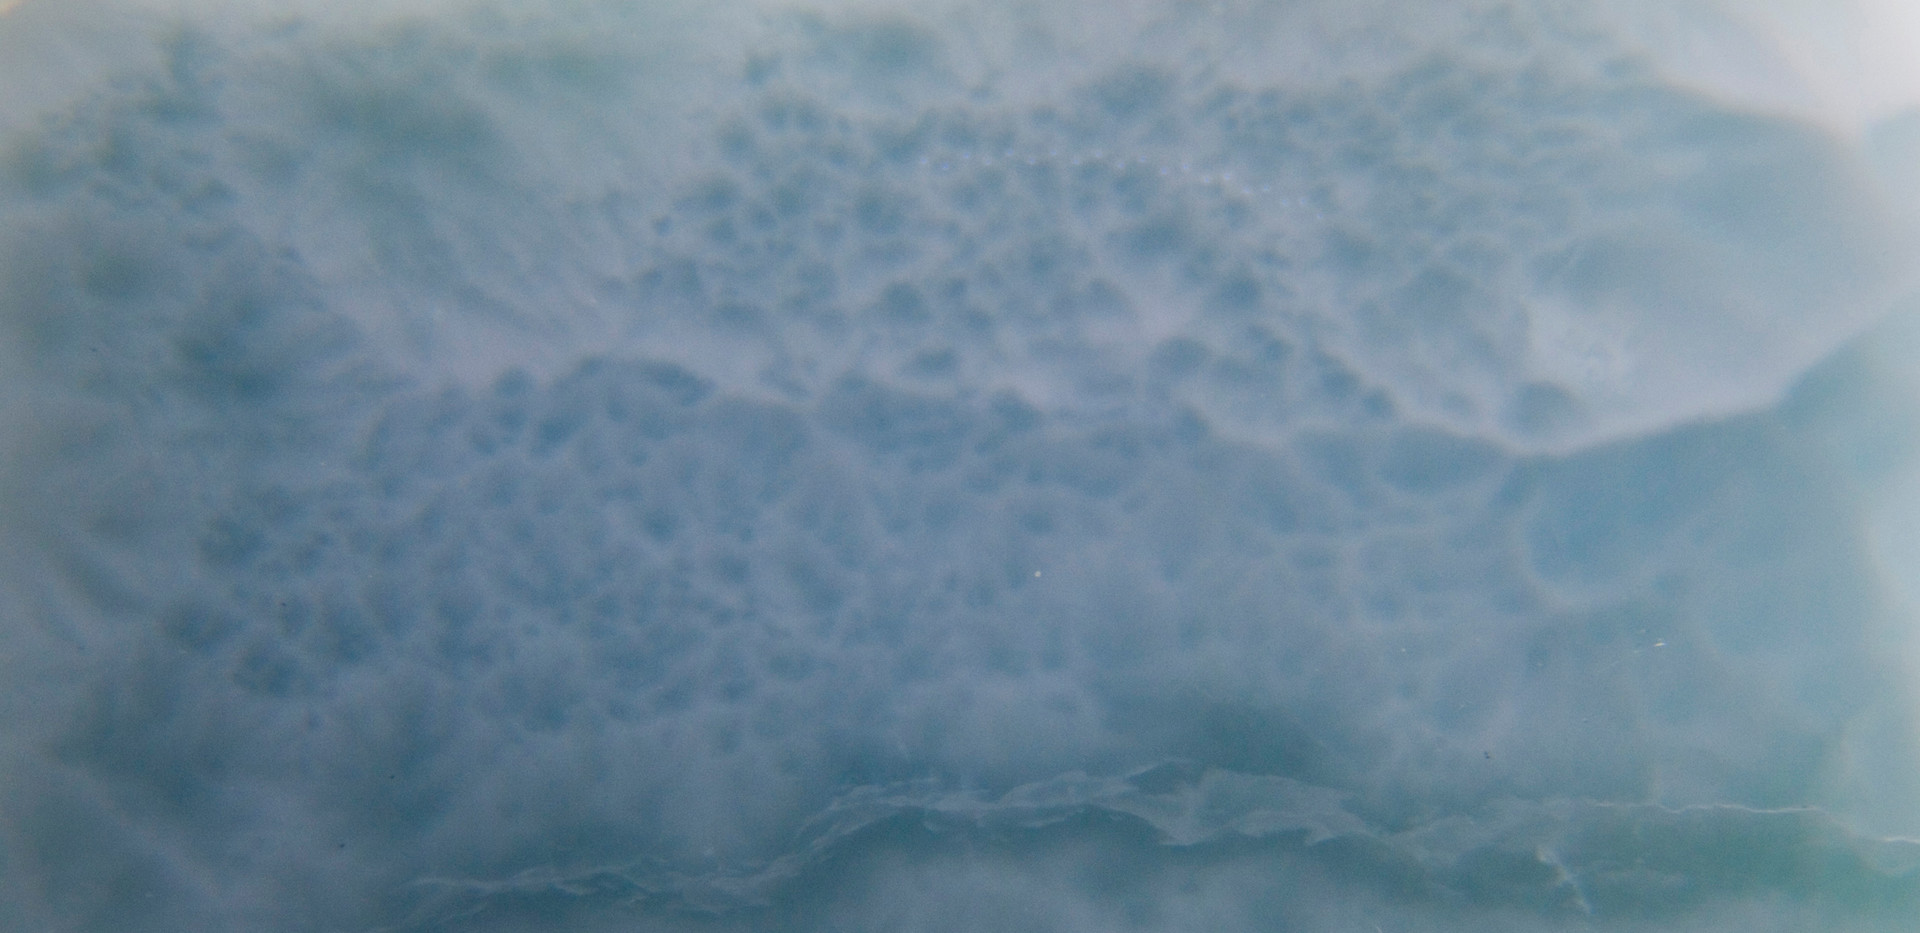 Larimar, the Caribbean sea expressed in stone